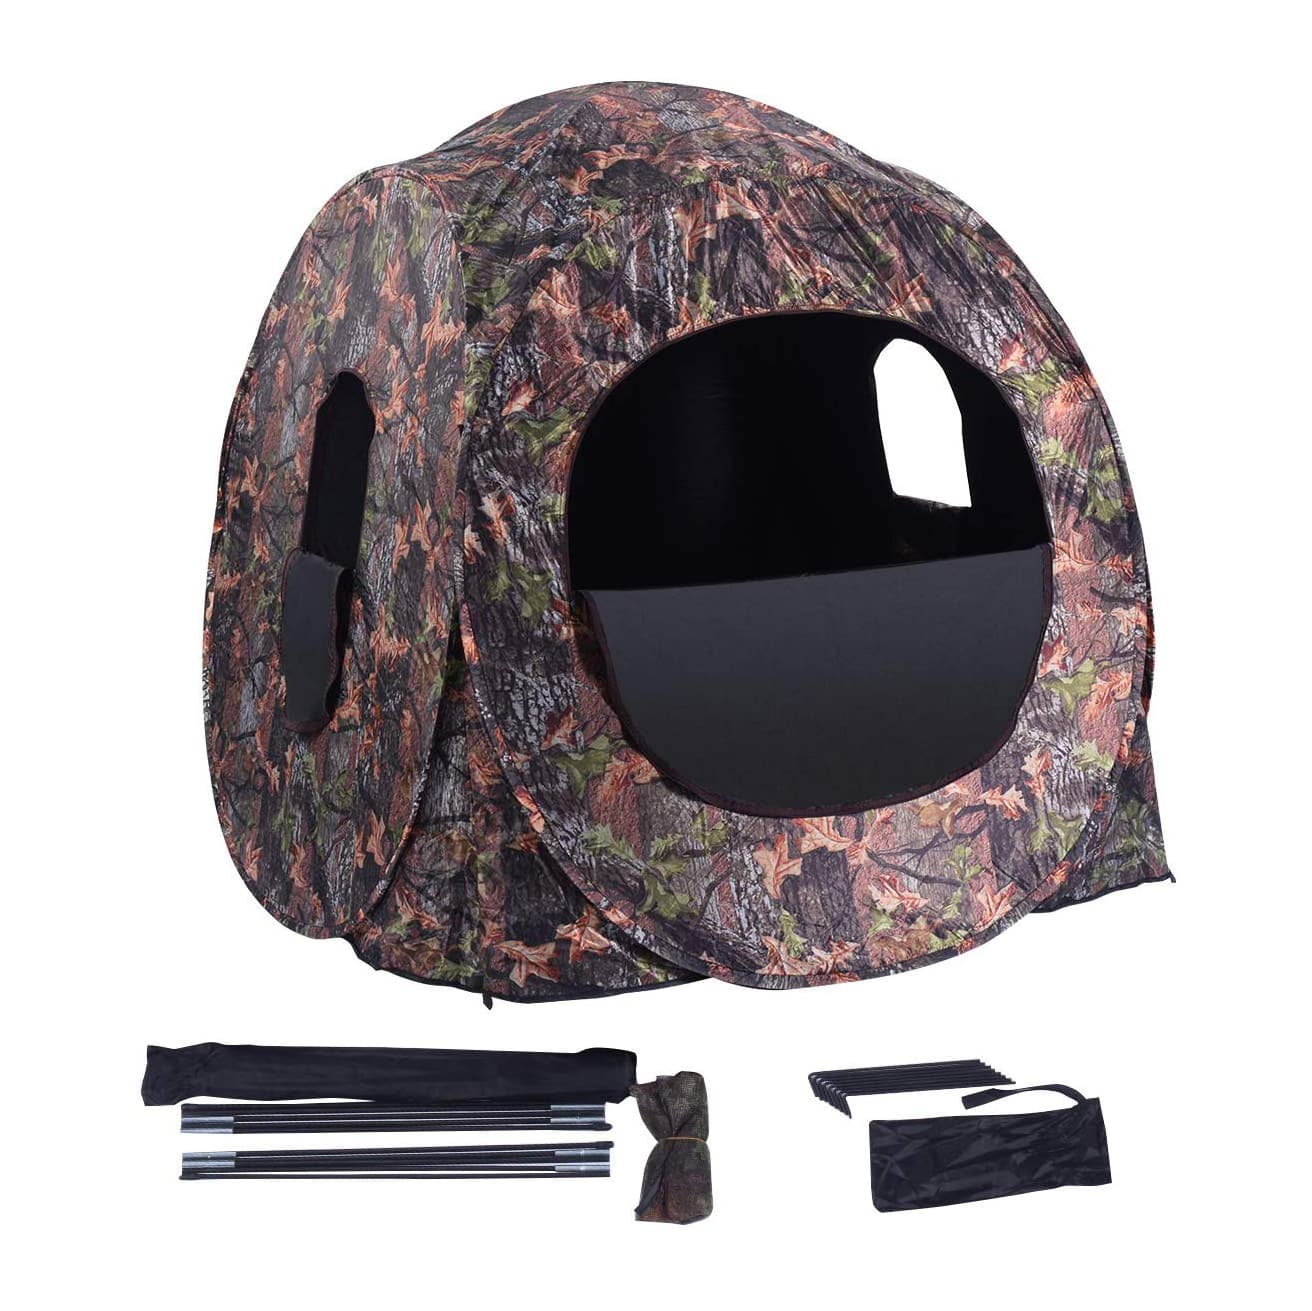 GYMAX Hunting Tent - Offers Large Capacity